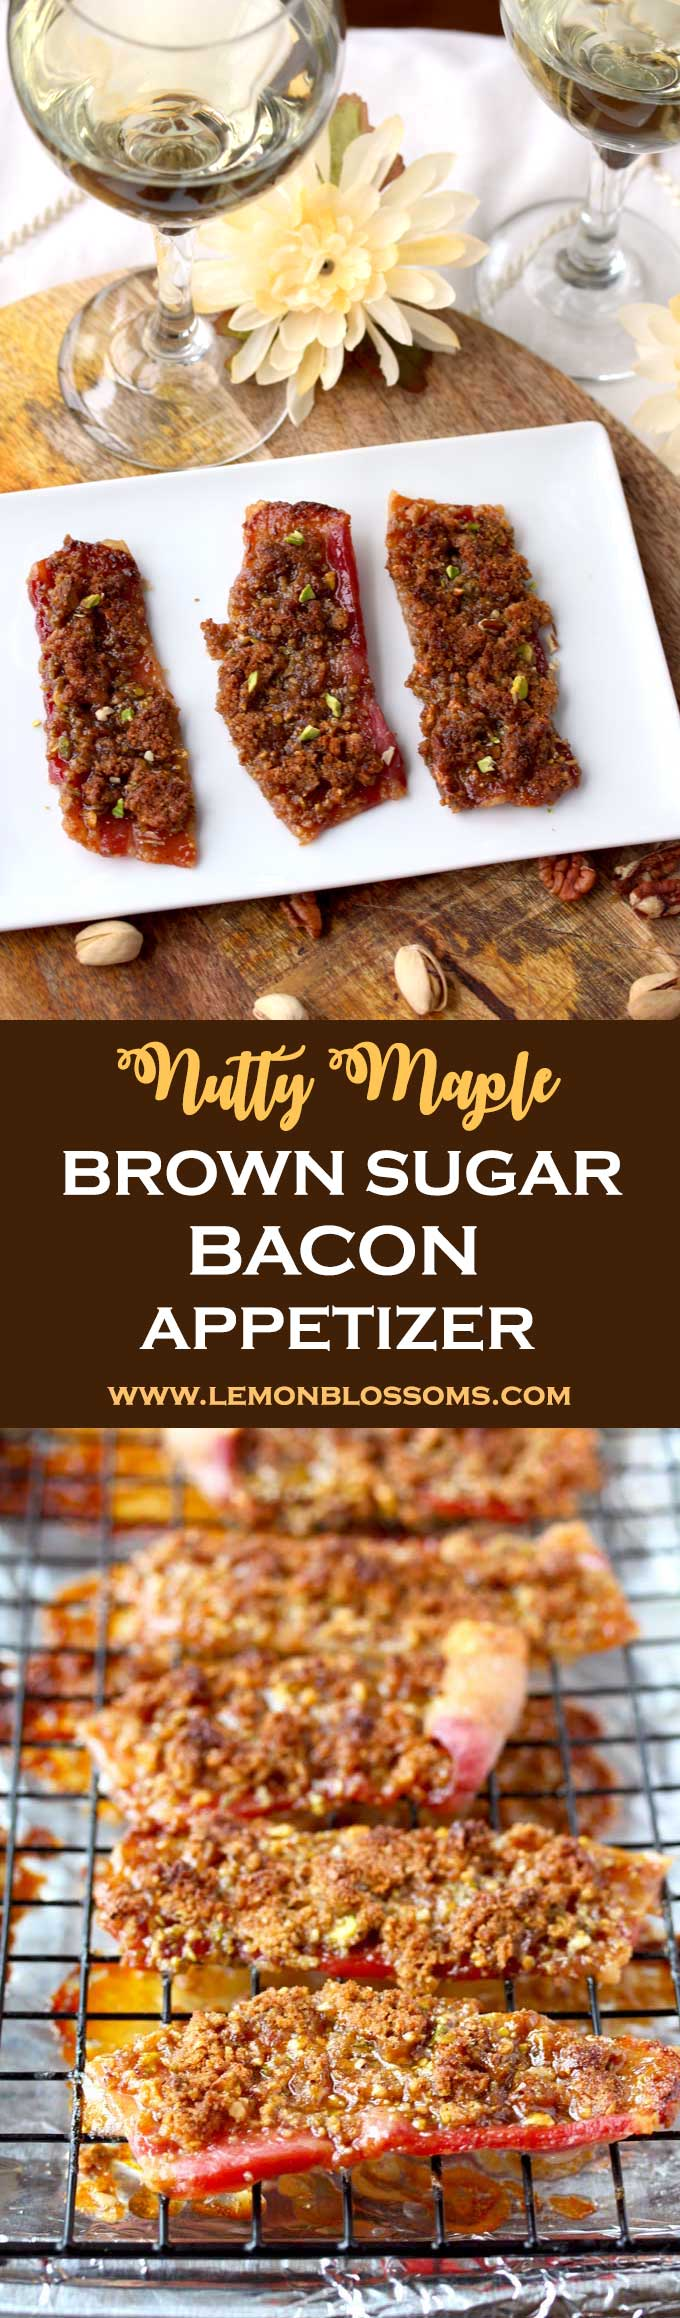 This Maple Brown Sugar Bacon Appetizer is very easy and quick to make. Sweet, savory and nutty. This mouthwatering treat is perfect for cocktail parties, game day or casual nights at home! #bacon #brownsugar #party #appetizer #gameday #tailgating #easy